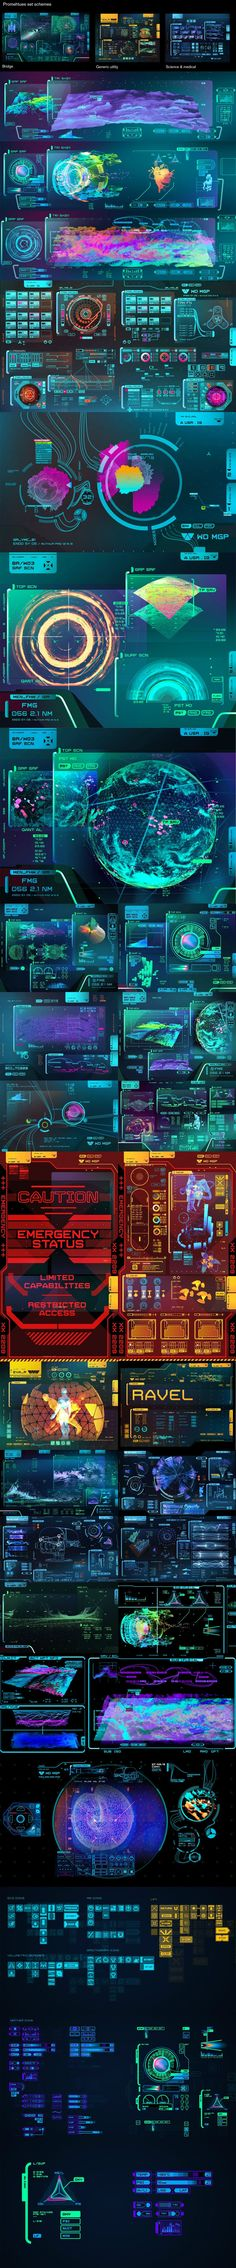 Conceptual user Interfaces experience constructs of the future, scifi or film vfx more on http://html5themes.org